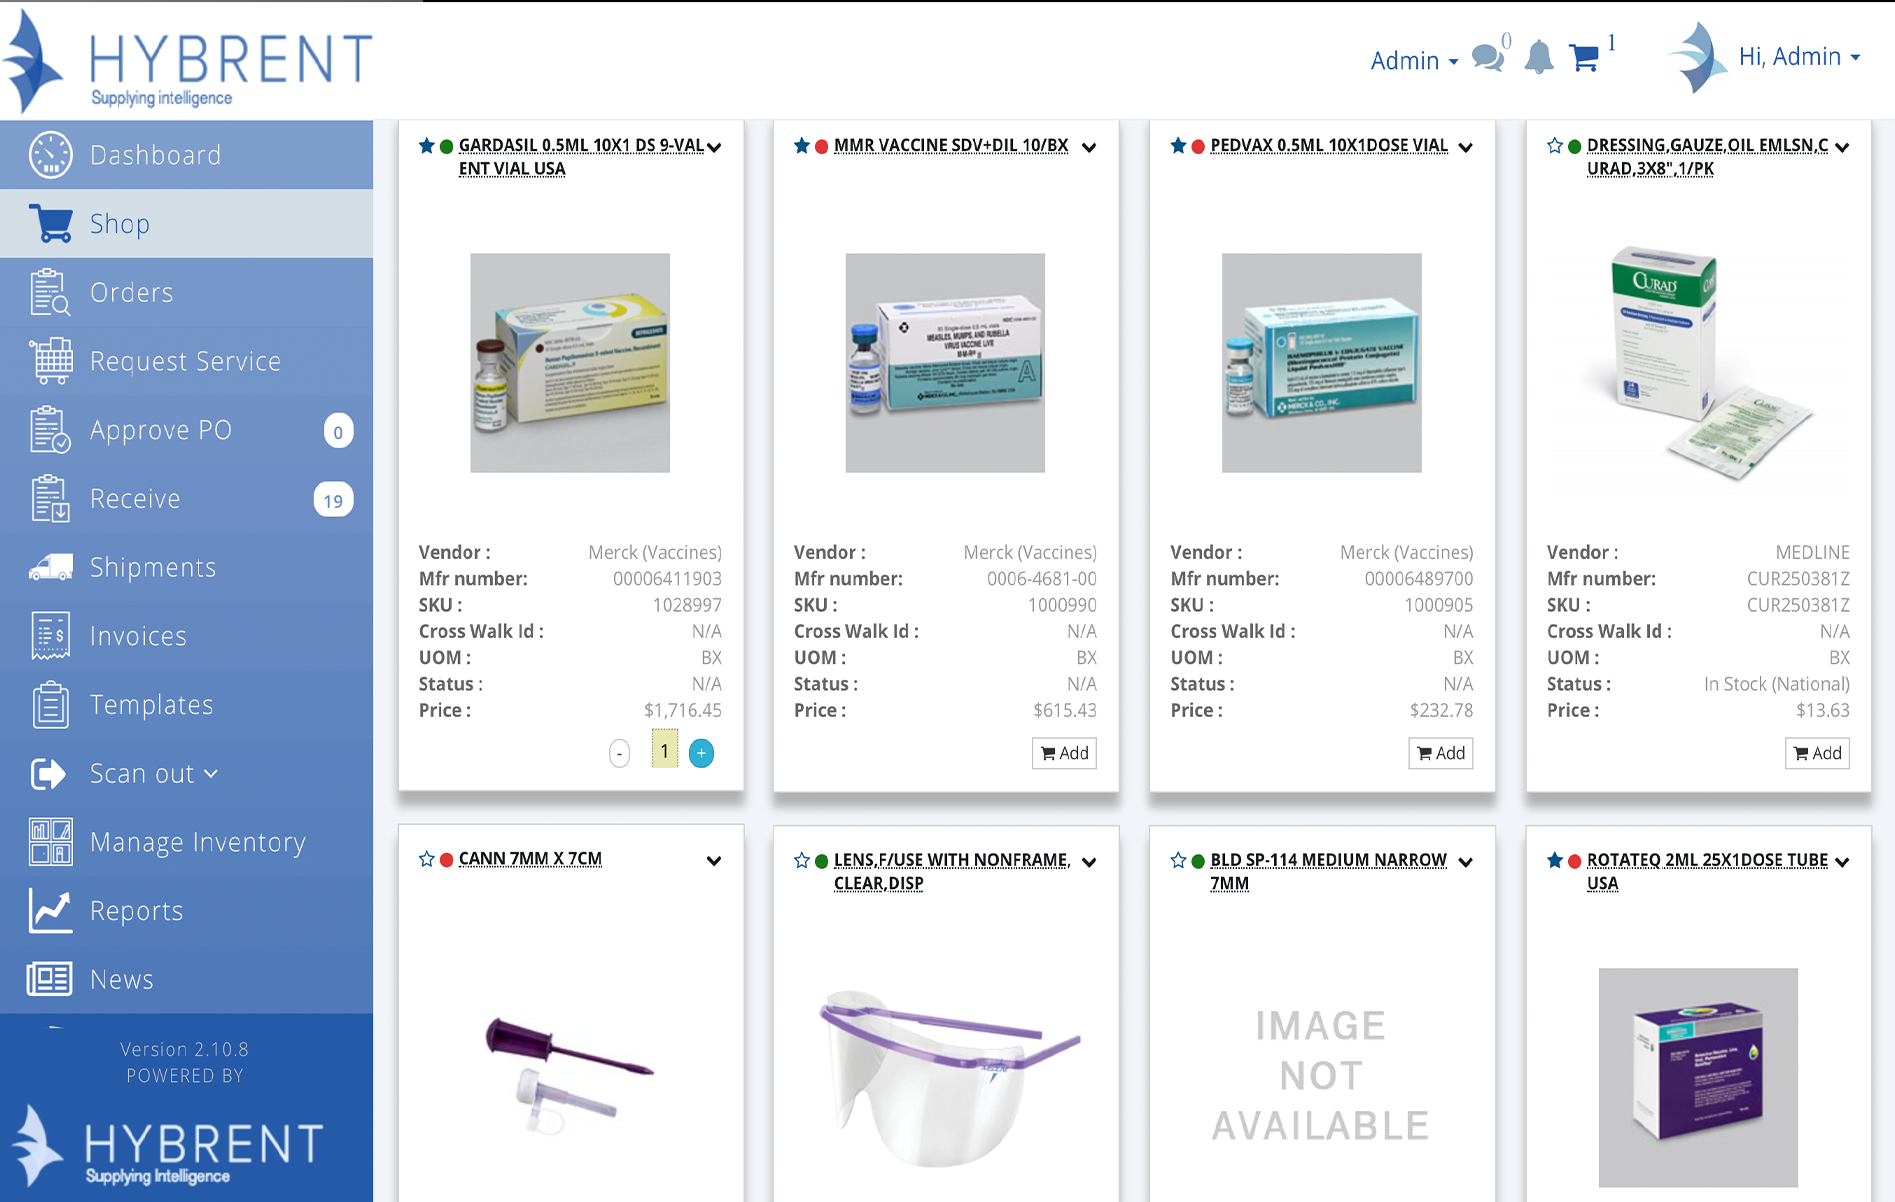 Hybrent purchasing software provides images on ordering screen